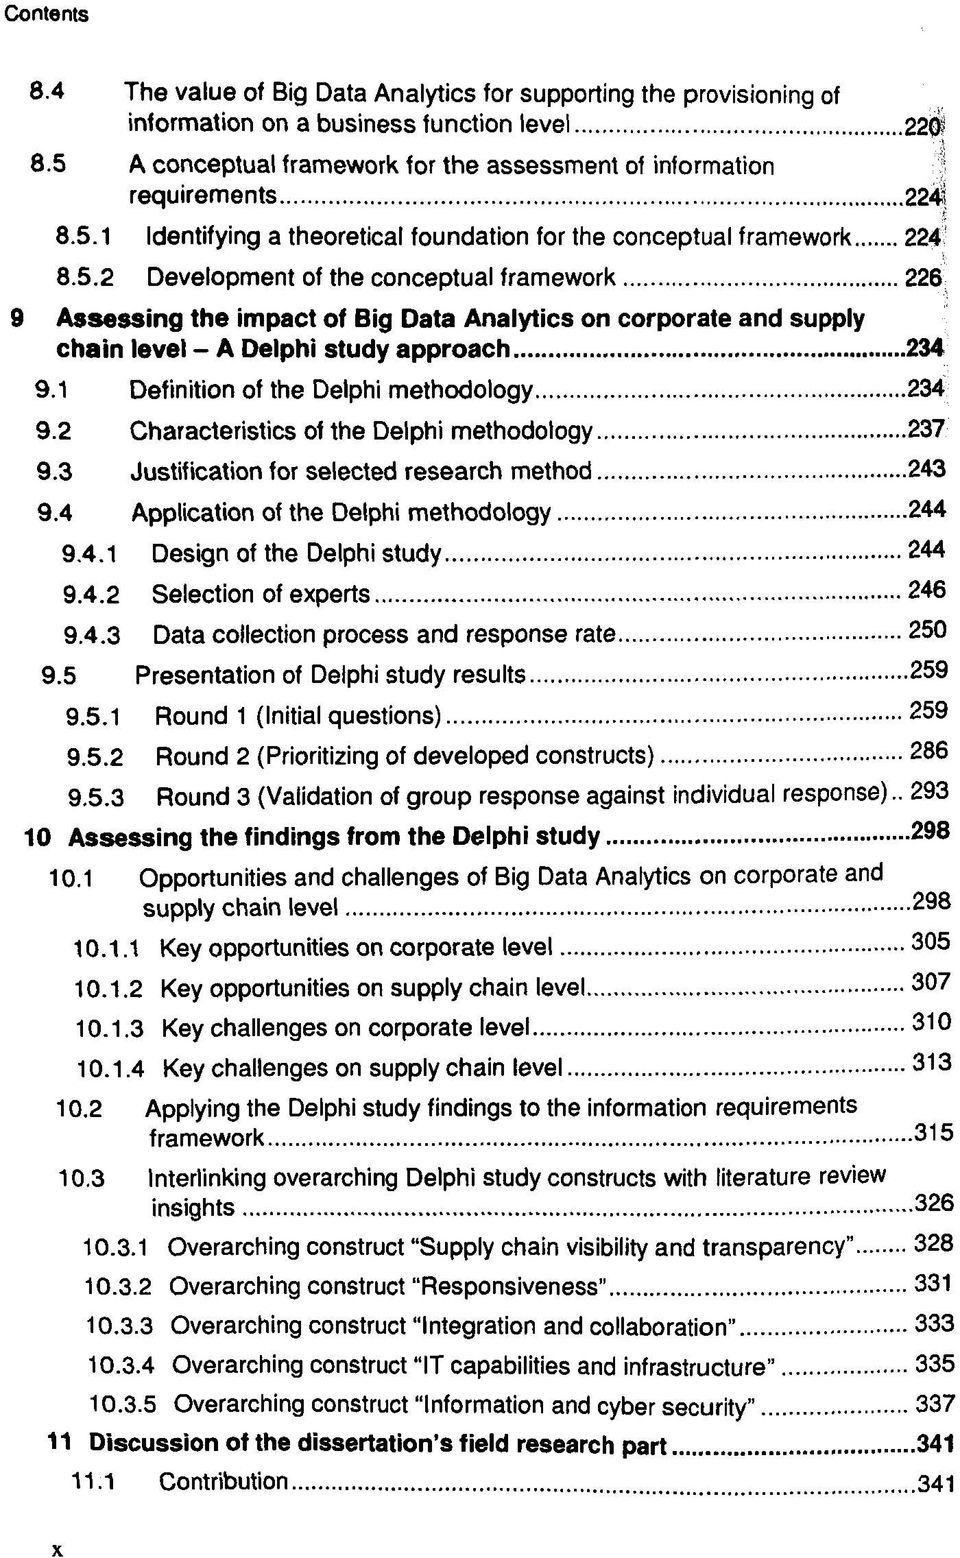 1 Definition of the Delphi methodology 234 9.2 Characteristics of the Delphi methodology 237 9.3 Justification for selected research method 243 9.4 Application of the Delphi methodology 244 9.4.1 Design of the Delphi study 244 9.